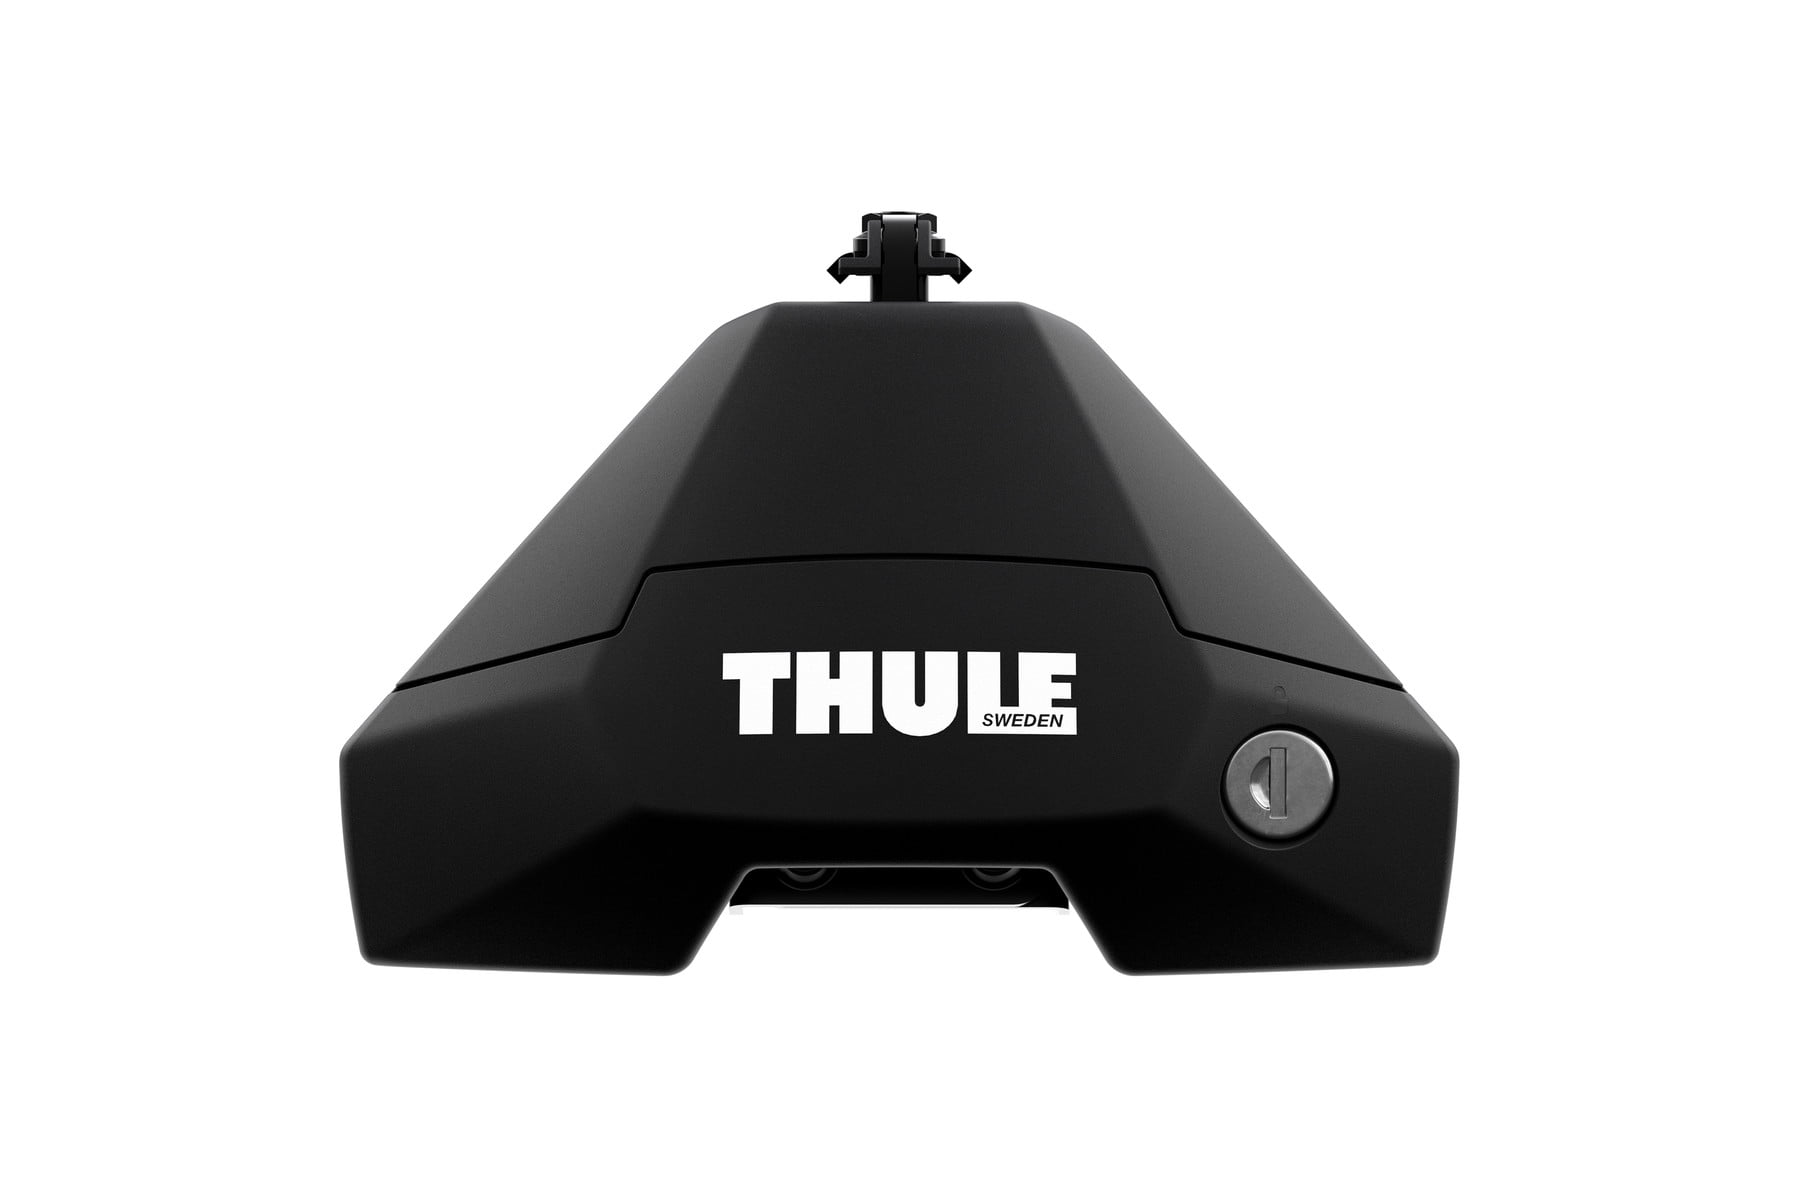 Thule Evo Clamp 7105 3